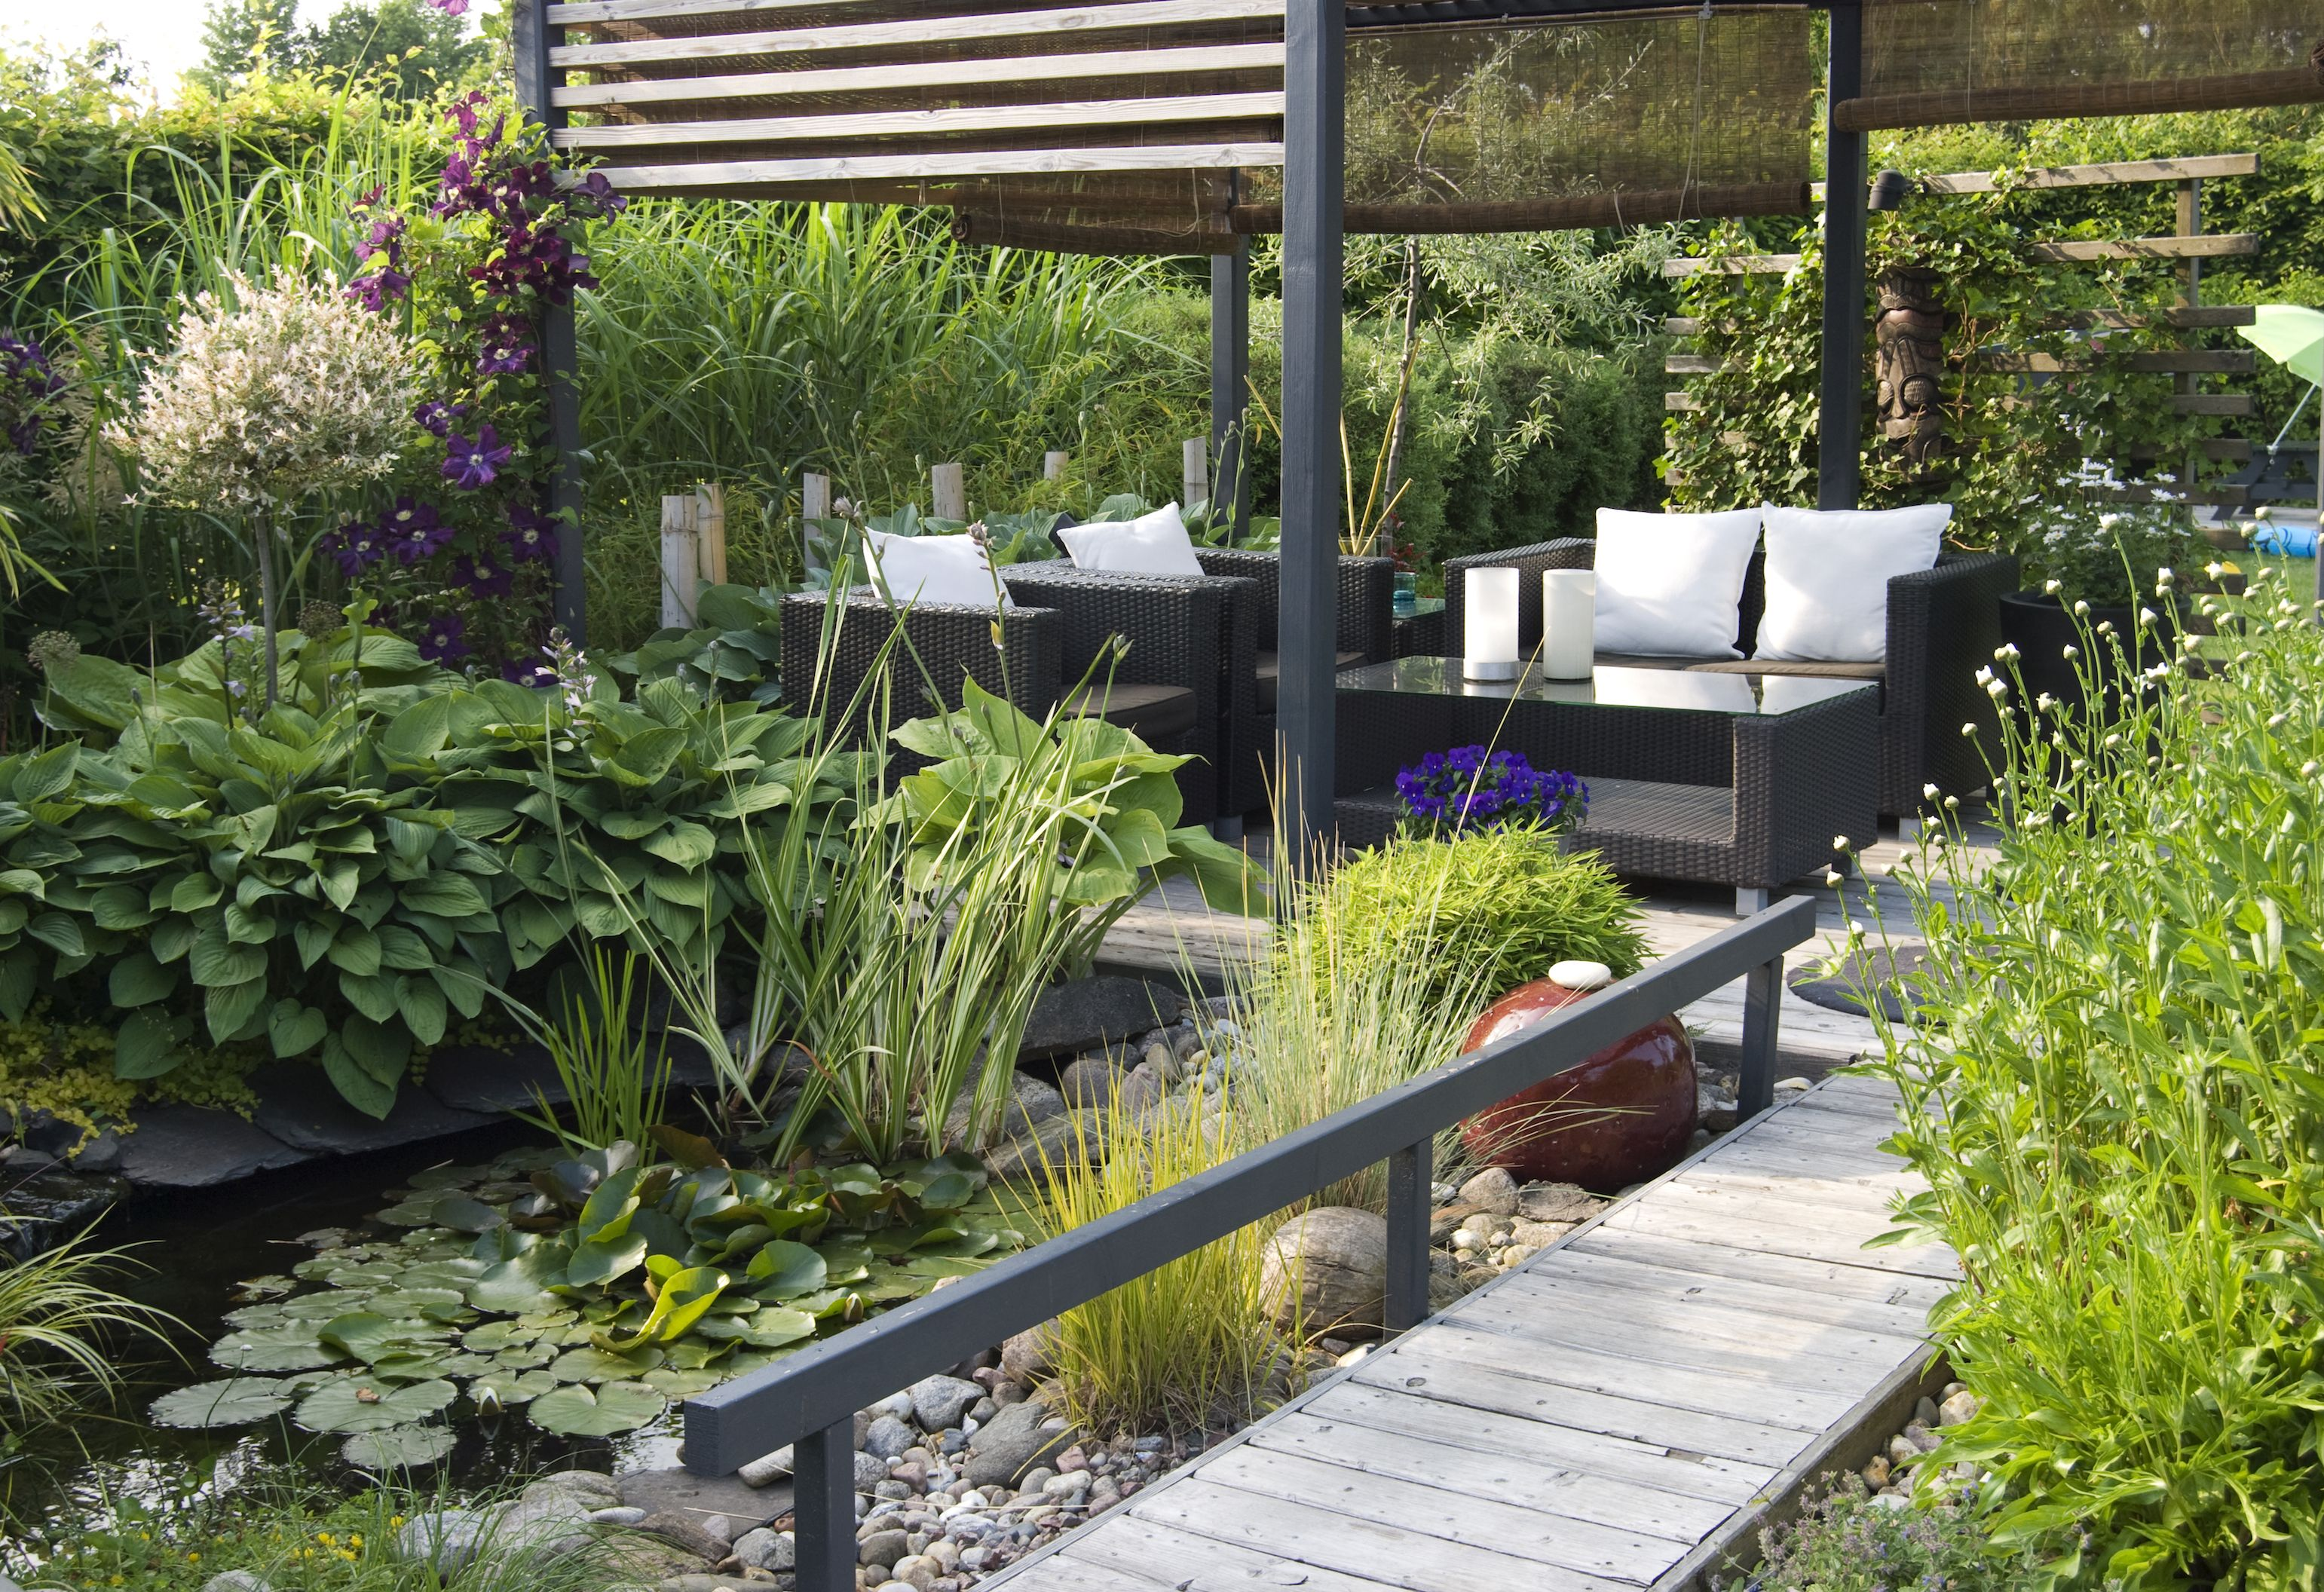 6 questions to ask your garden designer